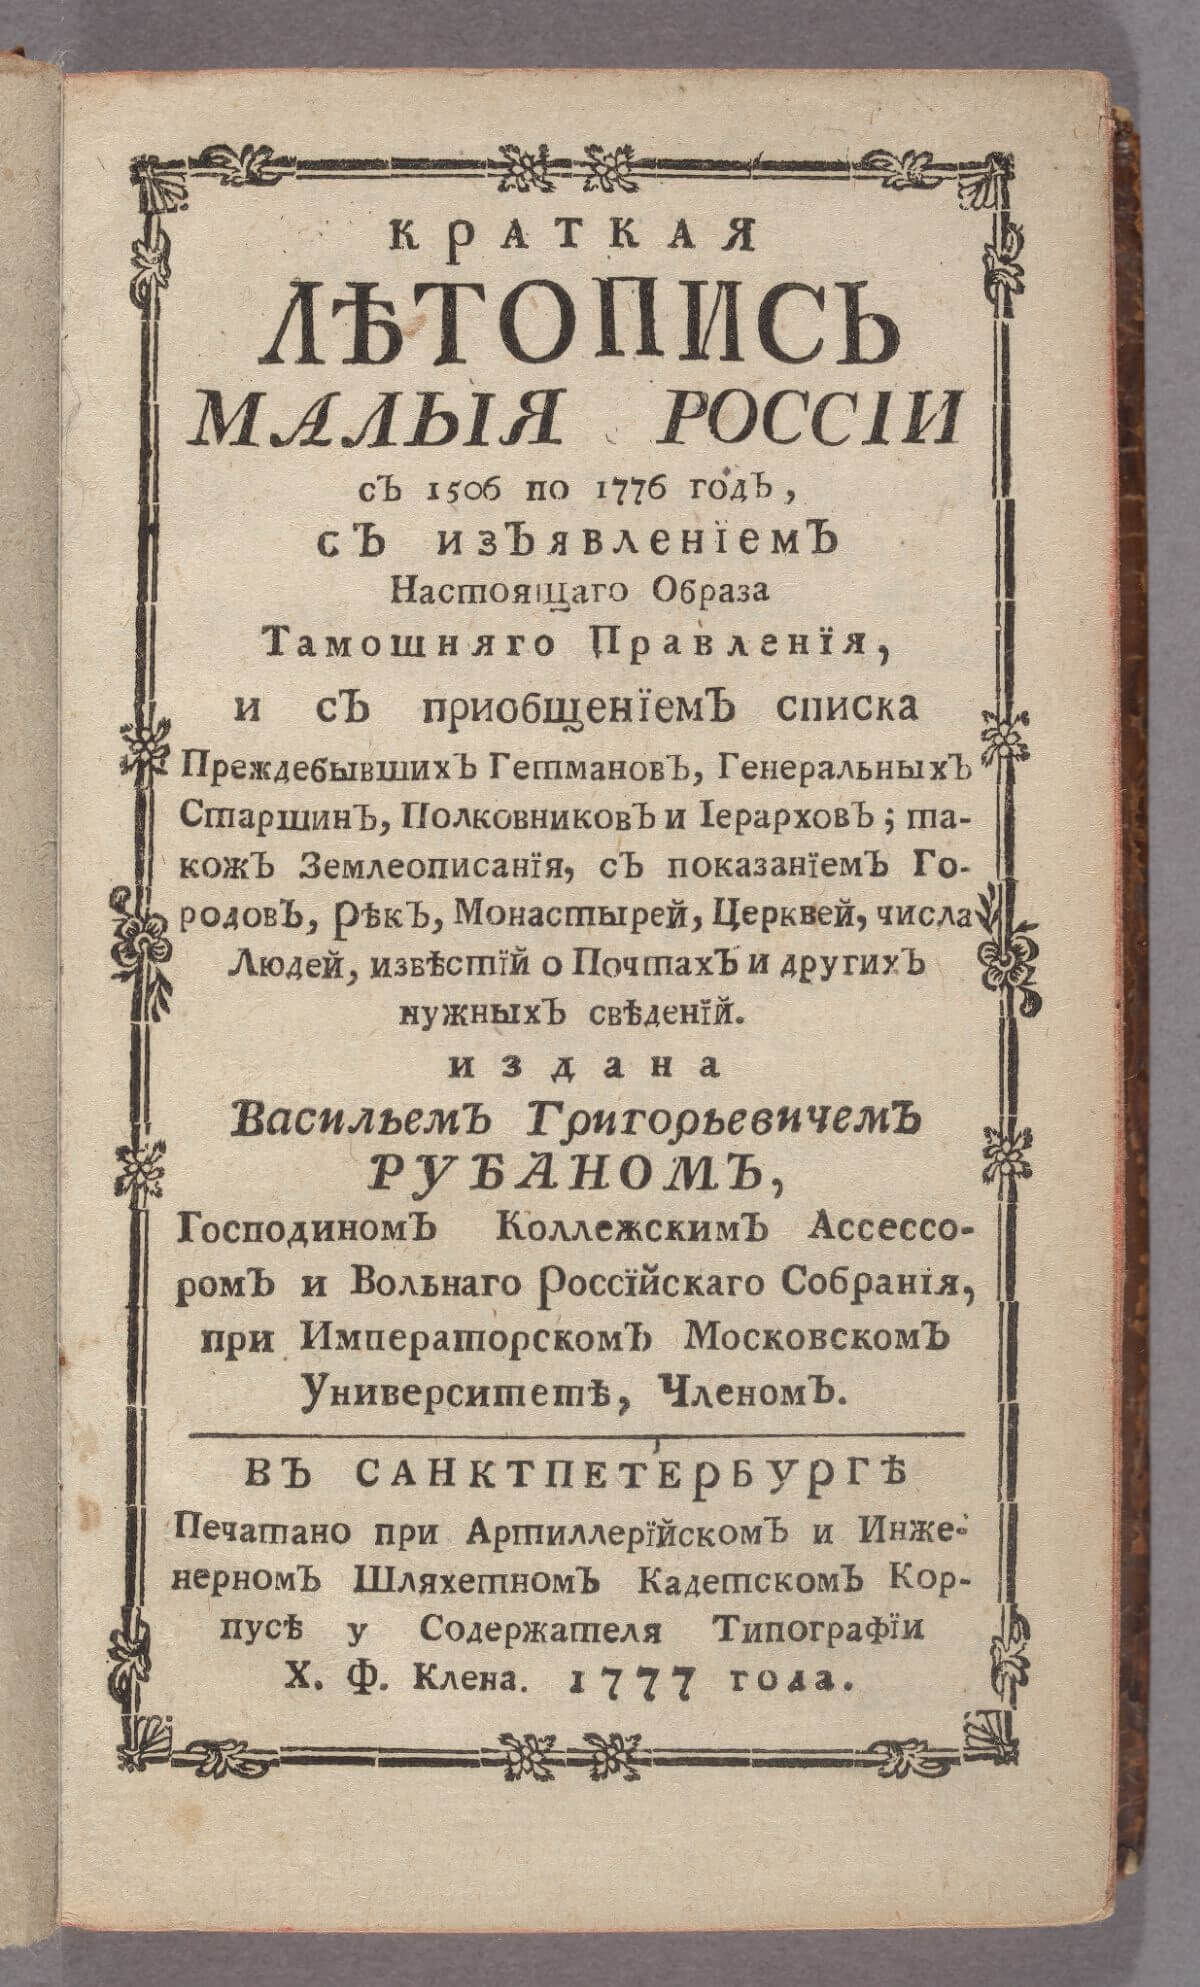 "This title page spells out the book's contents in detail: ""A Short Chronicle of Little Russia from 1506 to 1776, with the appearance of the present image of the local government, and with the appendix of the list of the Hetmans, the General Elders, Colonels and hierarchs; such that descriptions include indications of cities, rivers, monasteries, churches, the number of people, news about the Post [as in mail] and other necessary information."""